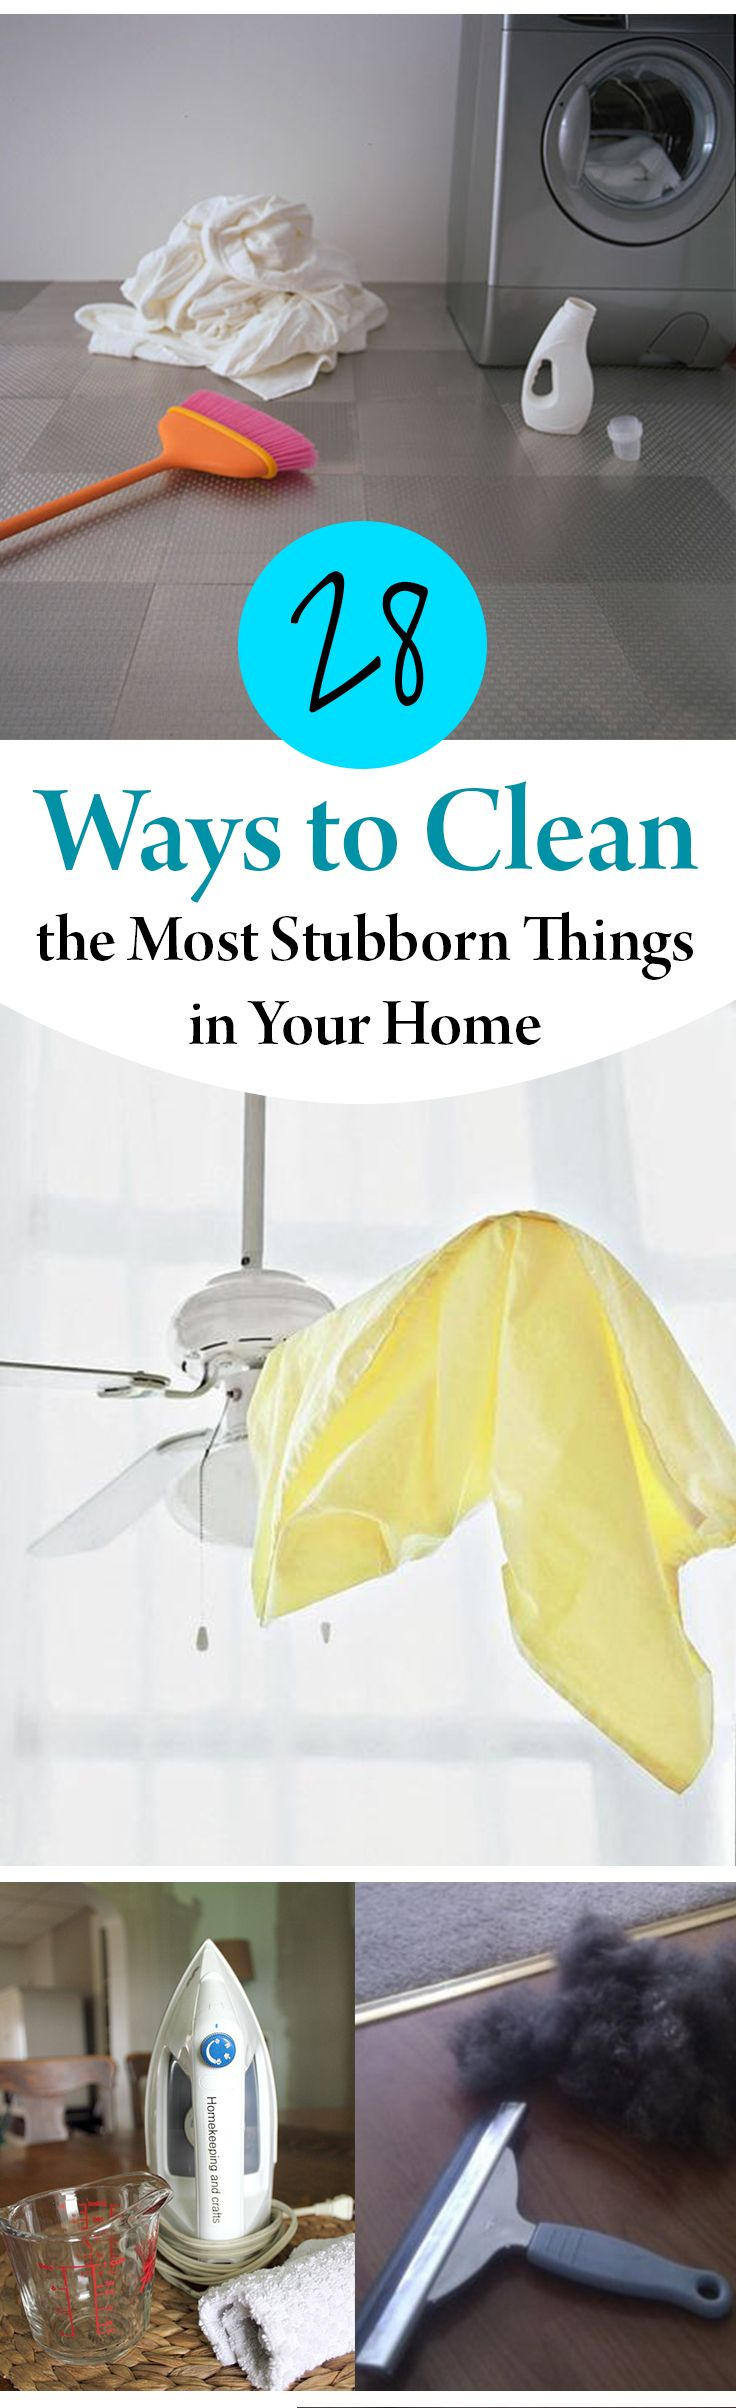 384 best Home Cleaning Tips images on Pinterest | Cleaning tips, Diy ...